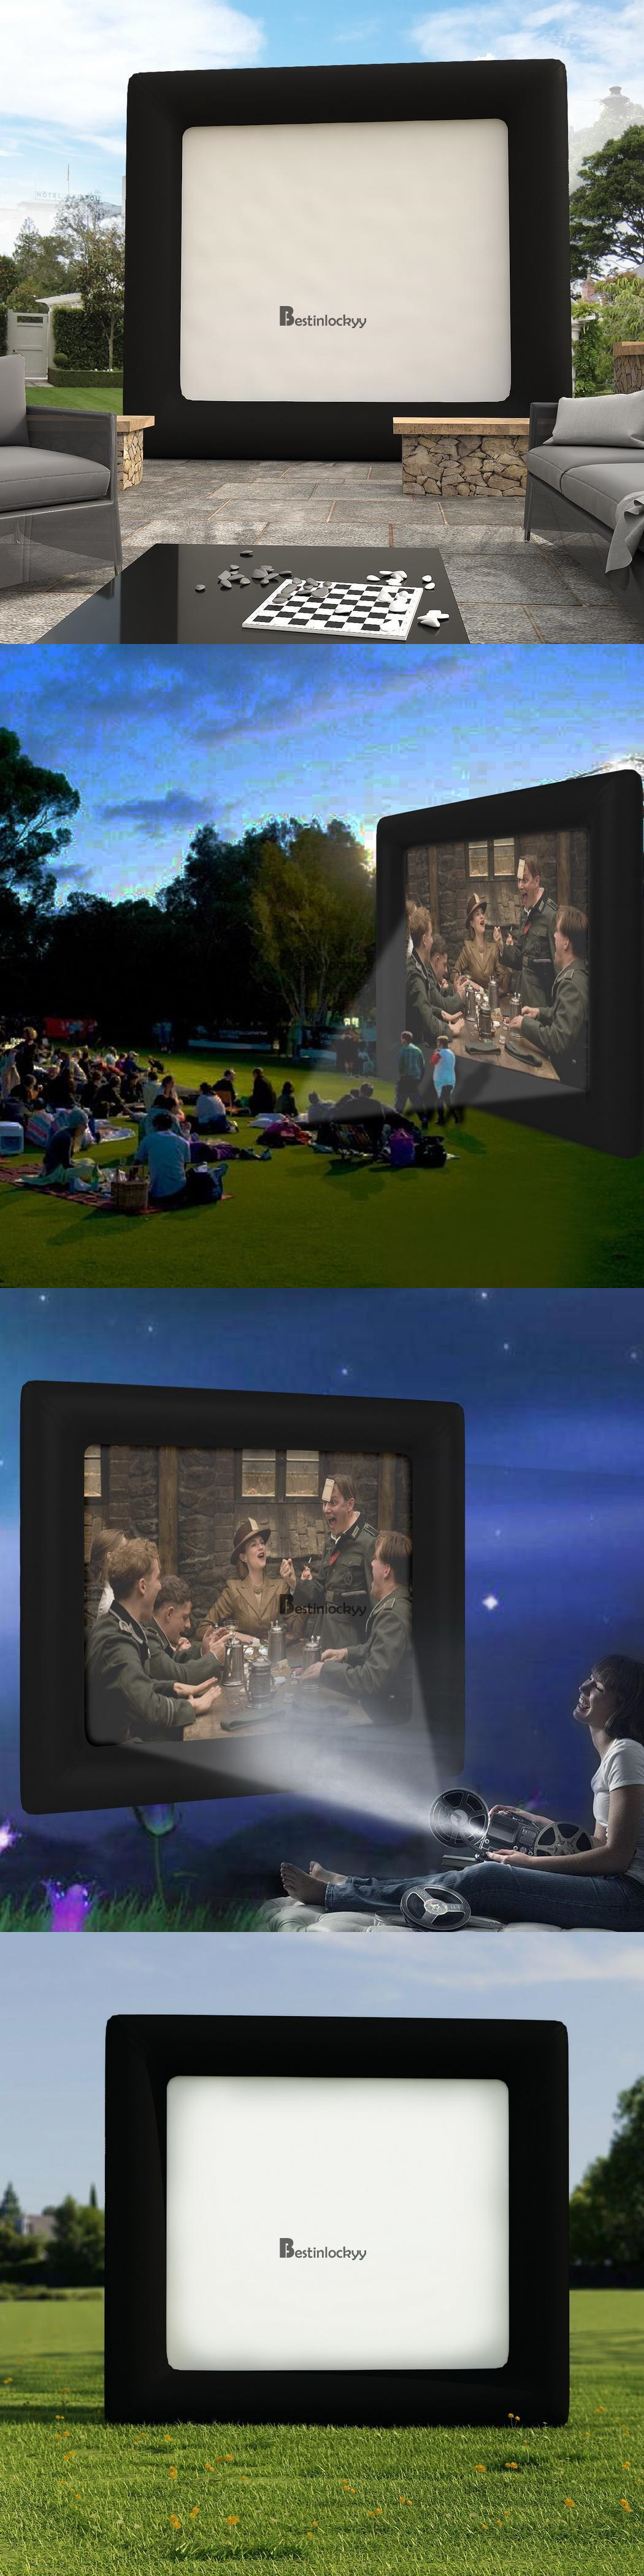 projection screens and material 4x3 5m giant inflatable movie